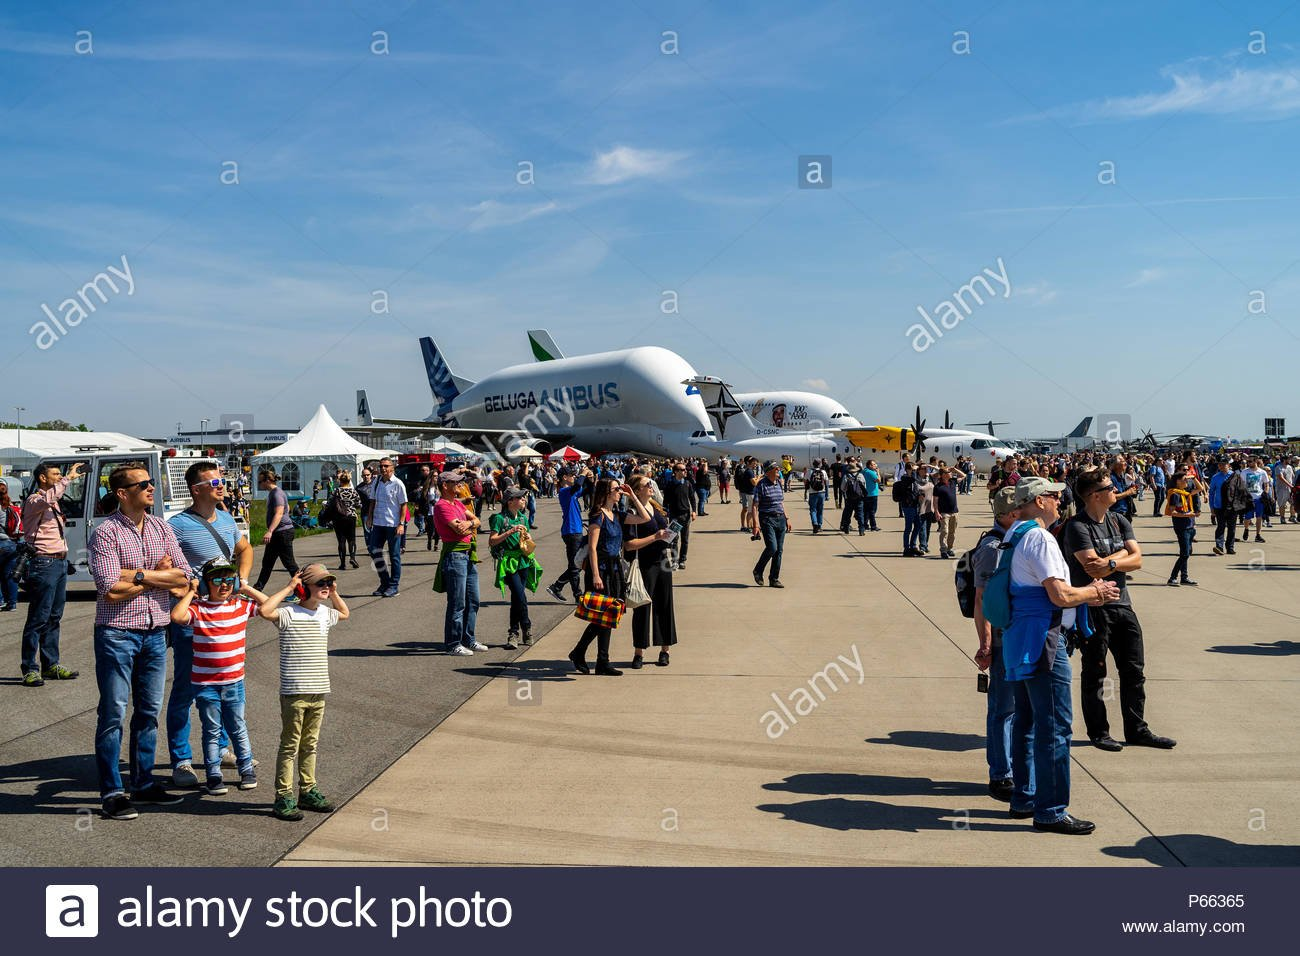 Visitors to the exhibition on the airfield In the background 1300x956